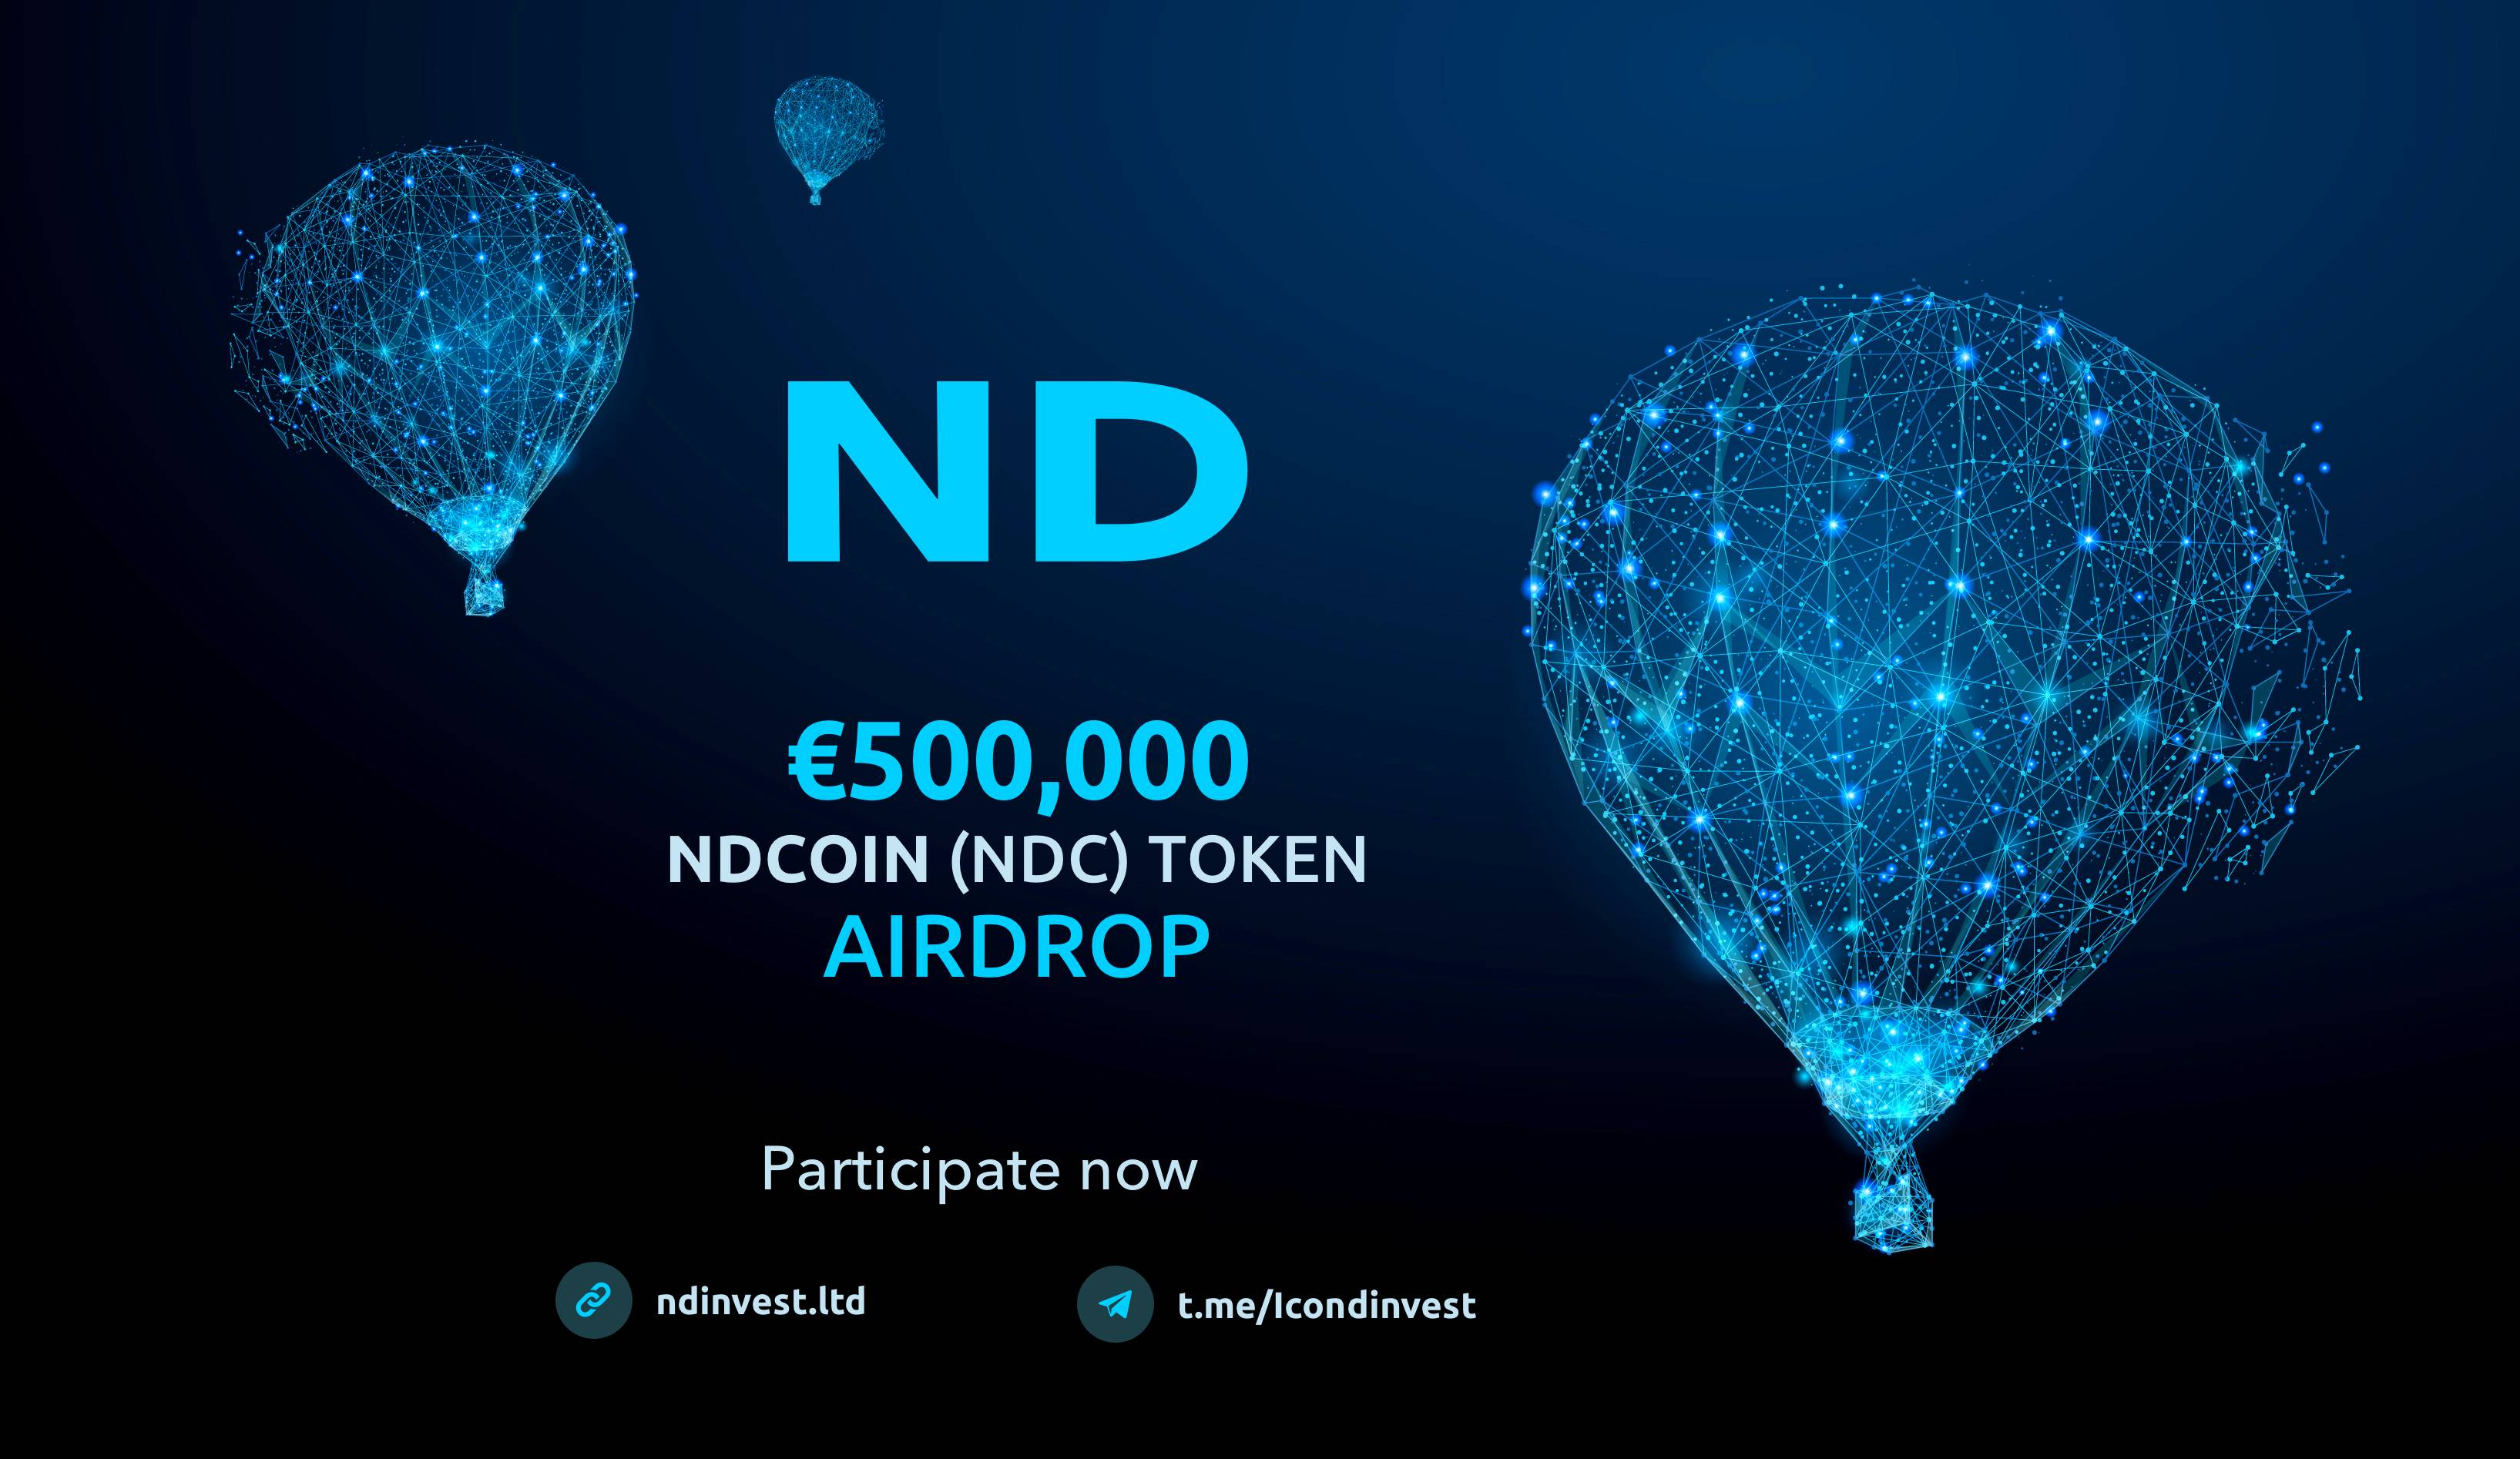 ND Invest Airdrop » Claim 20 free NDC tokens (~ $23)